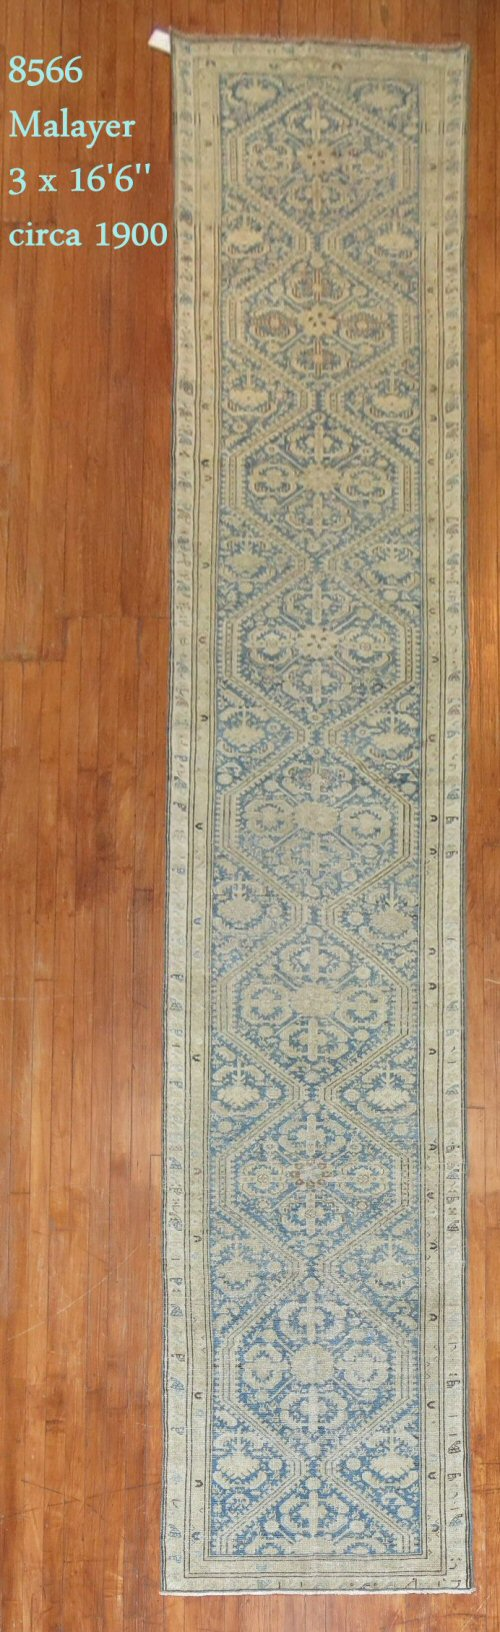 "Rug Number: 8566 Size: 3' x 16'6""   Rugs R Us Online, A Division of J&D Oriental Rugs Co."